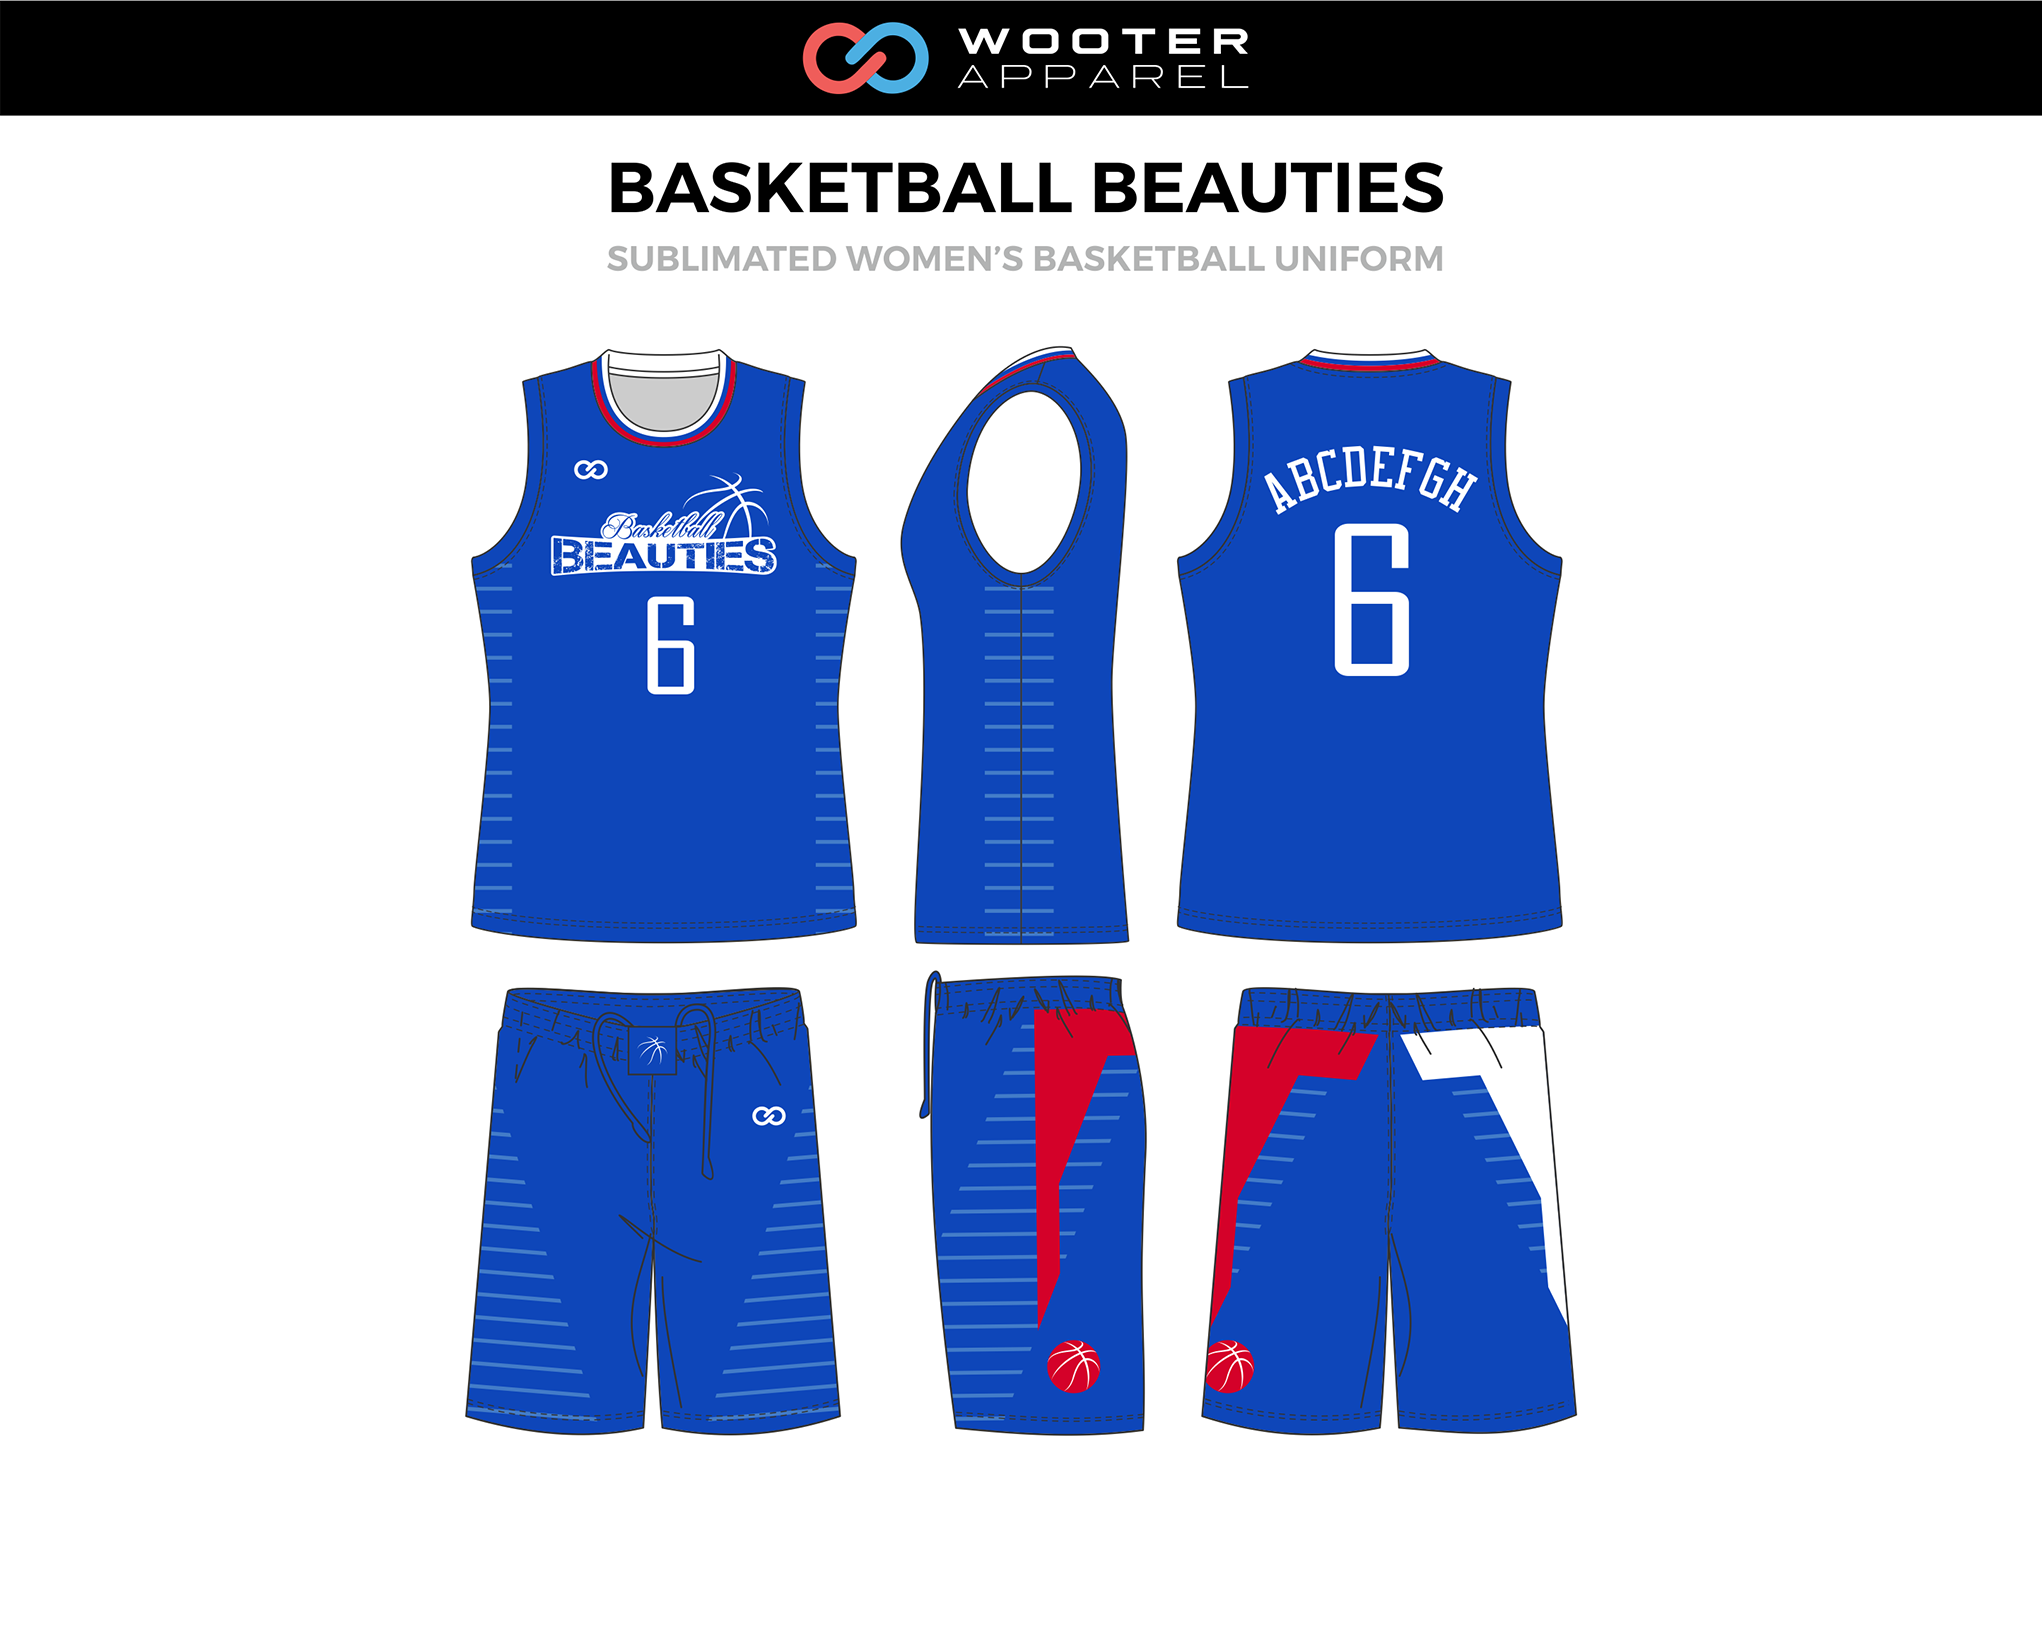 78759bc2 Basketball Uniform Designs — Wooter Apparel | Team Uniforms and ...